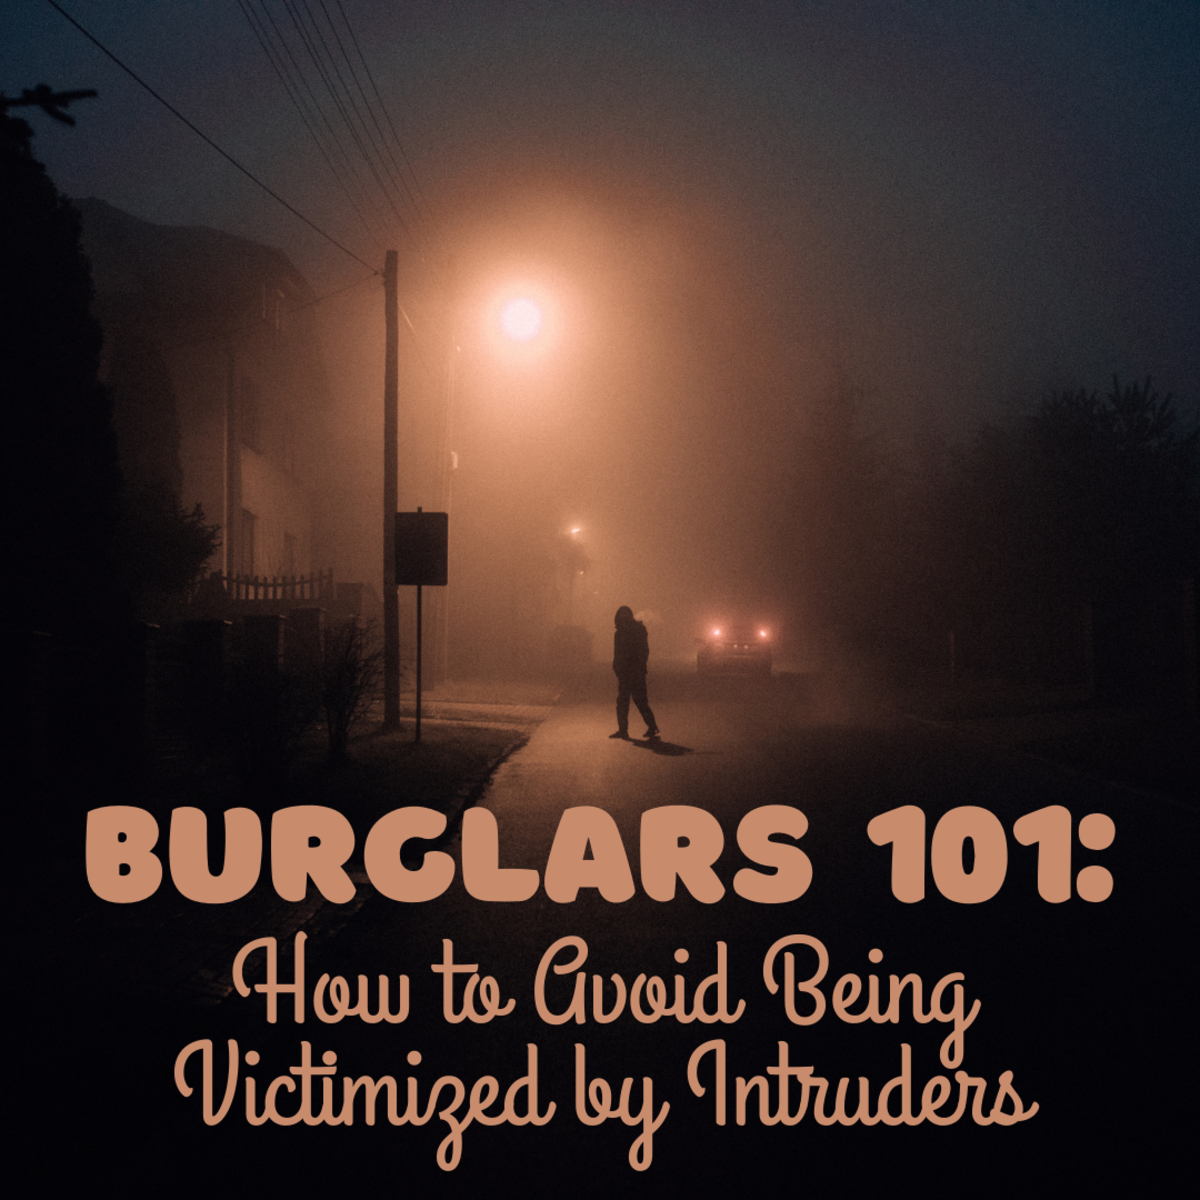 How to outsmart burglars and prevent them from coming into your home